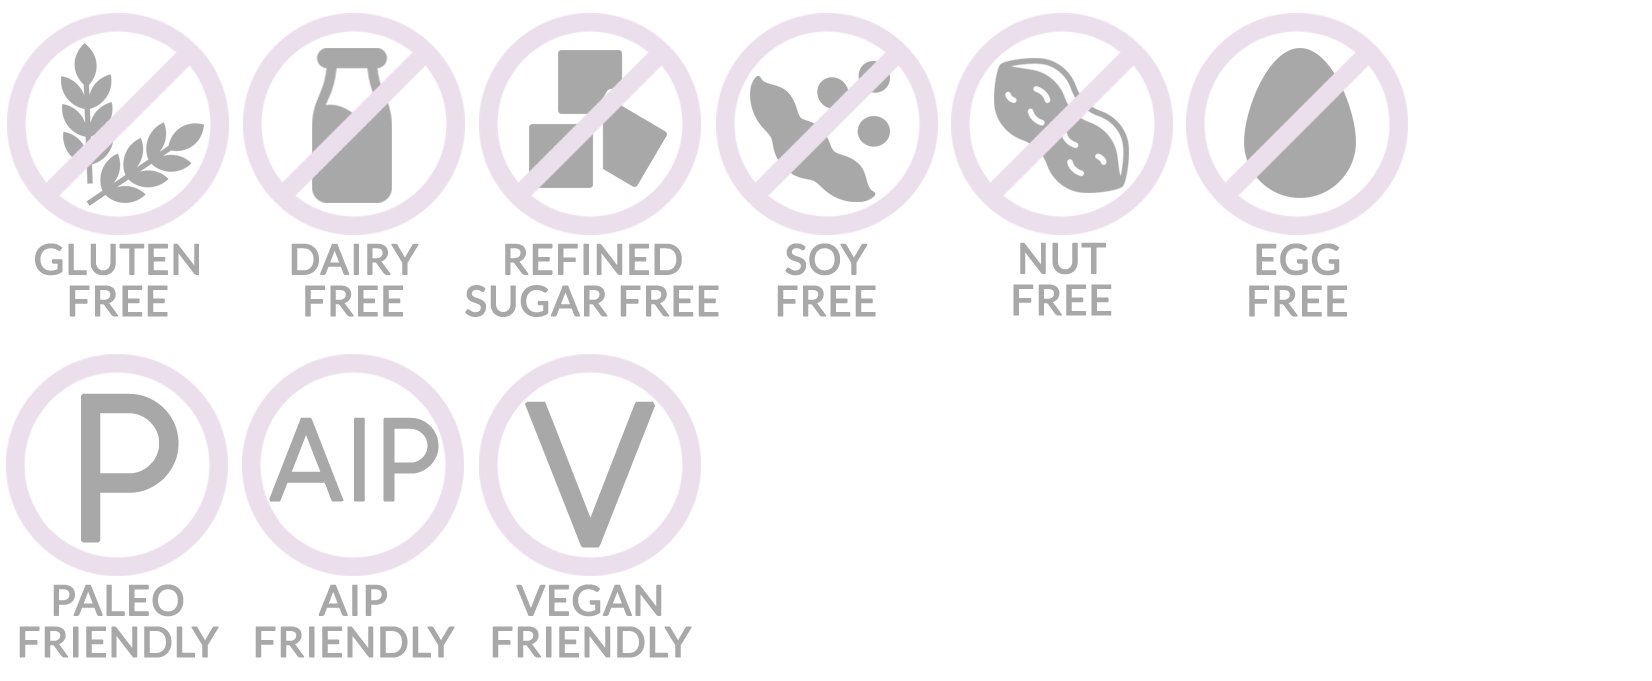 Allergen logos - Gluten-free, dairy-free, soy-free, refined sugar-free, paleo, AIP-friendly, vegan, egg-free, nut-free